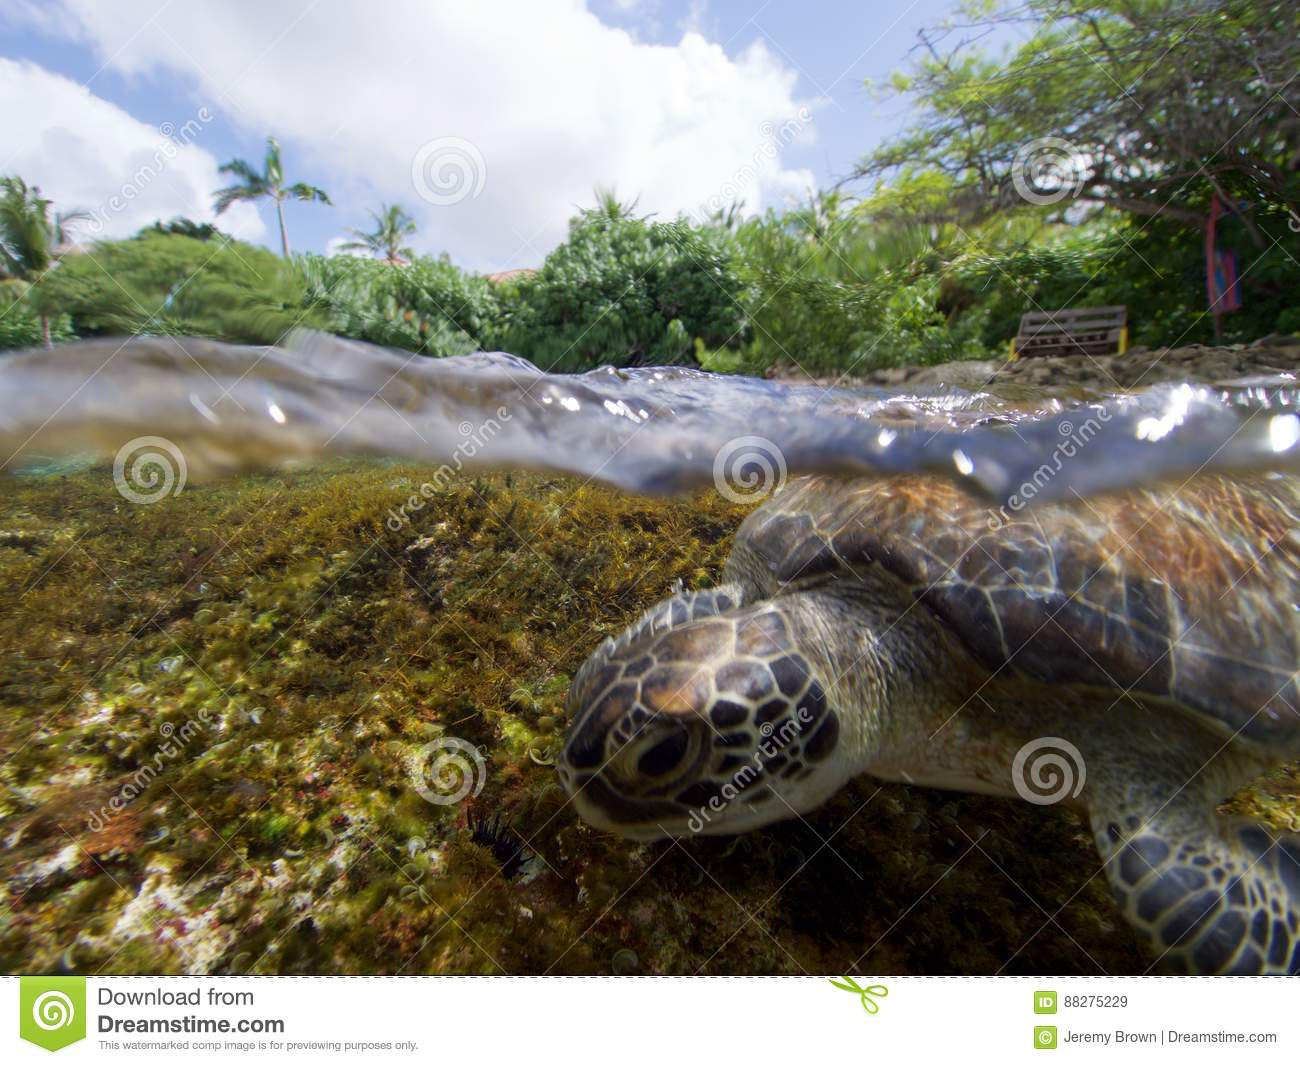 Surfing Green Turtle Stock Image. Image Of Americhelydia